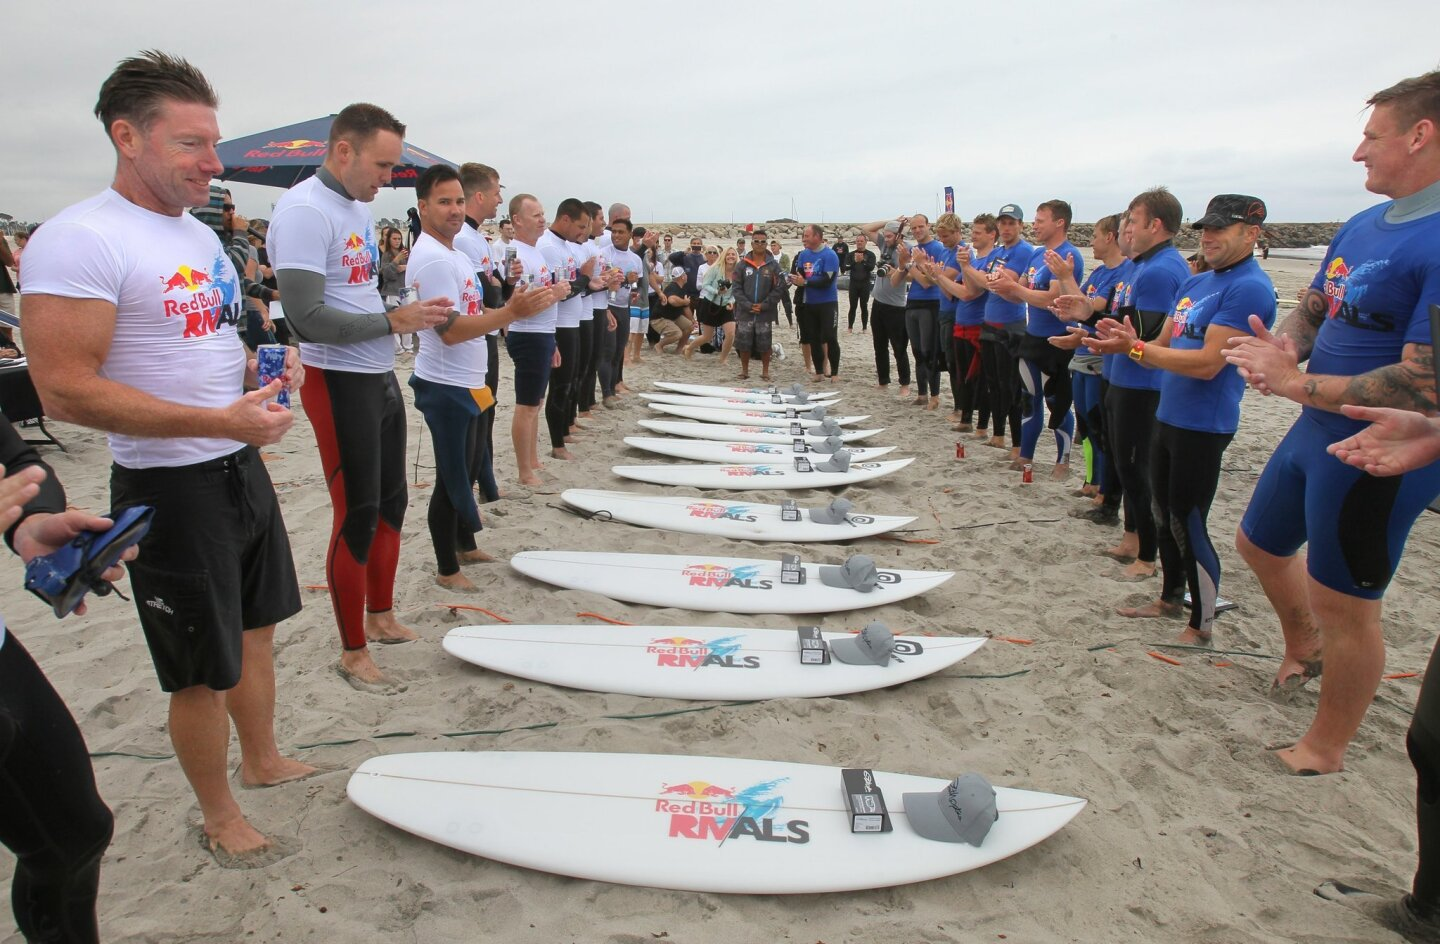 Red Bull Rivals military surf tournament